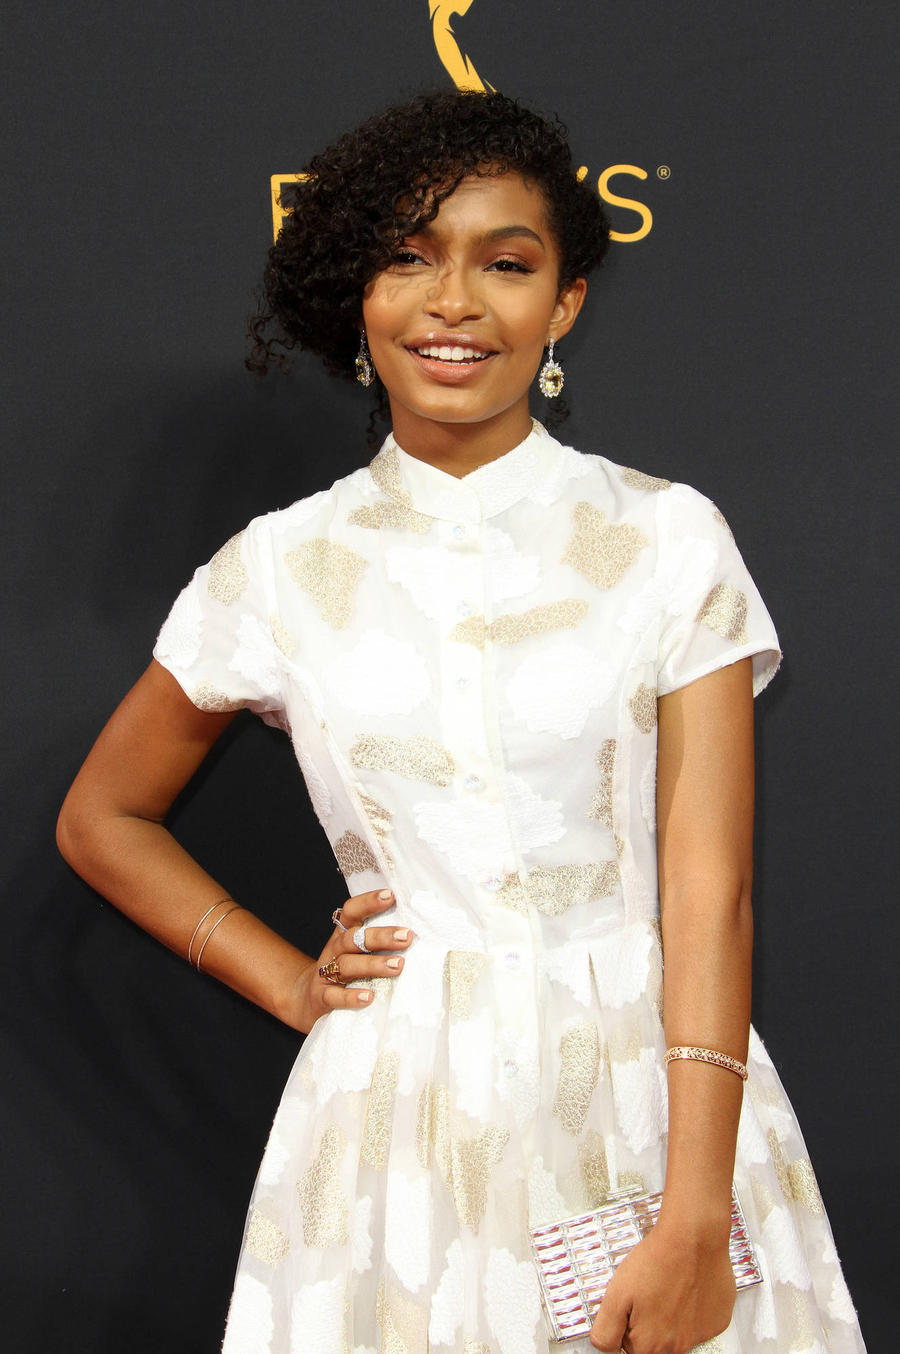 Actress Yara Shahidi Plans To Defer College